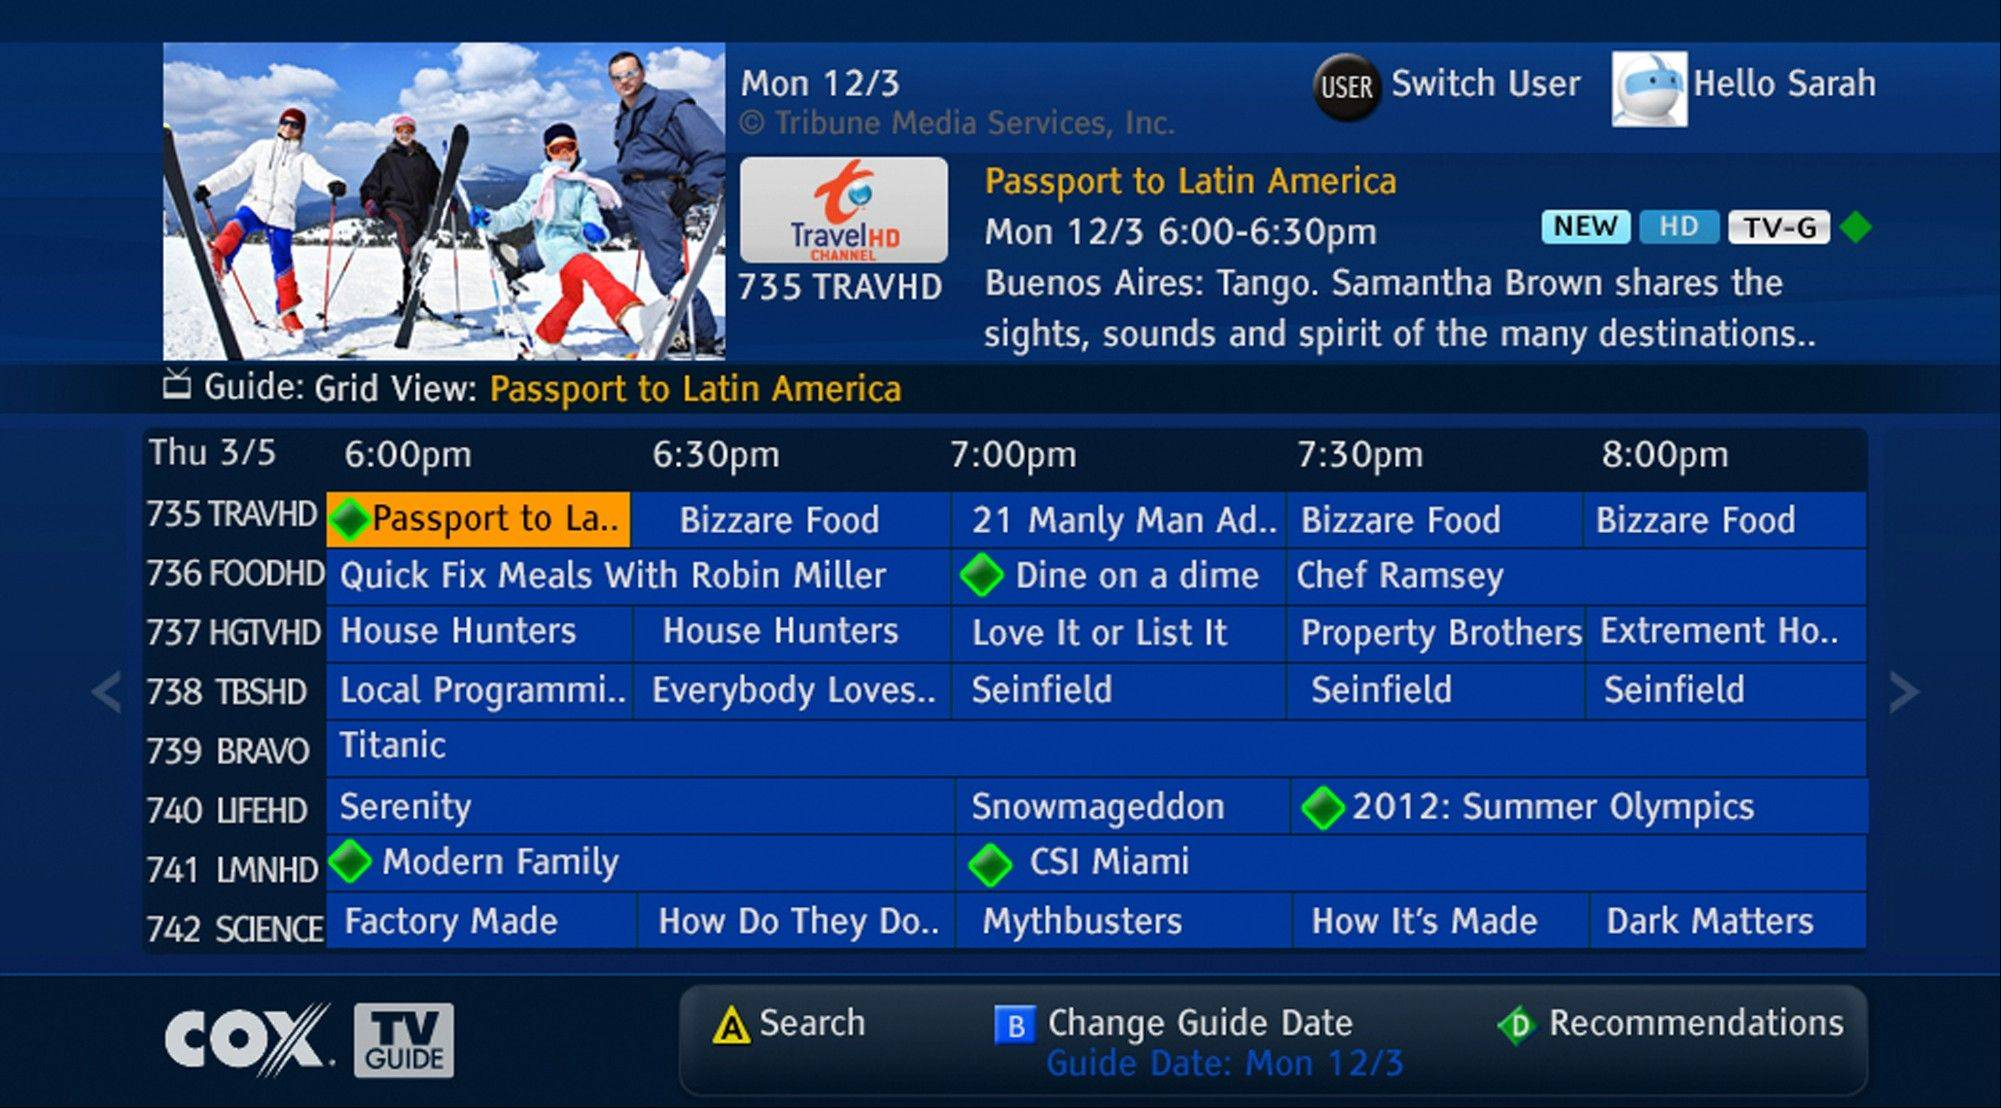 This image provided by Cox Communications shows a program guide for television set-top boxes to make it easier to find programs available live or on demand. It�s an important development for cable TV companies, as they face criticisms for providing hundreds of channels that customers don�t watch. Making shows easier to find helps the companies justify all those channels.